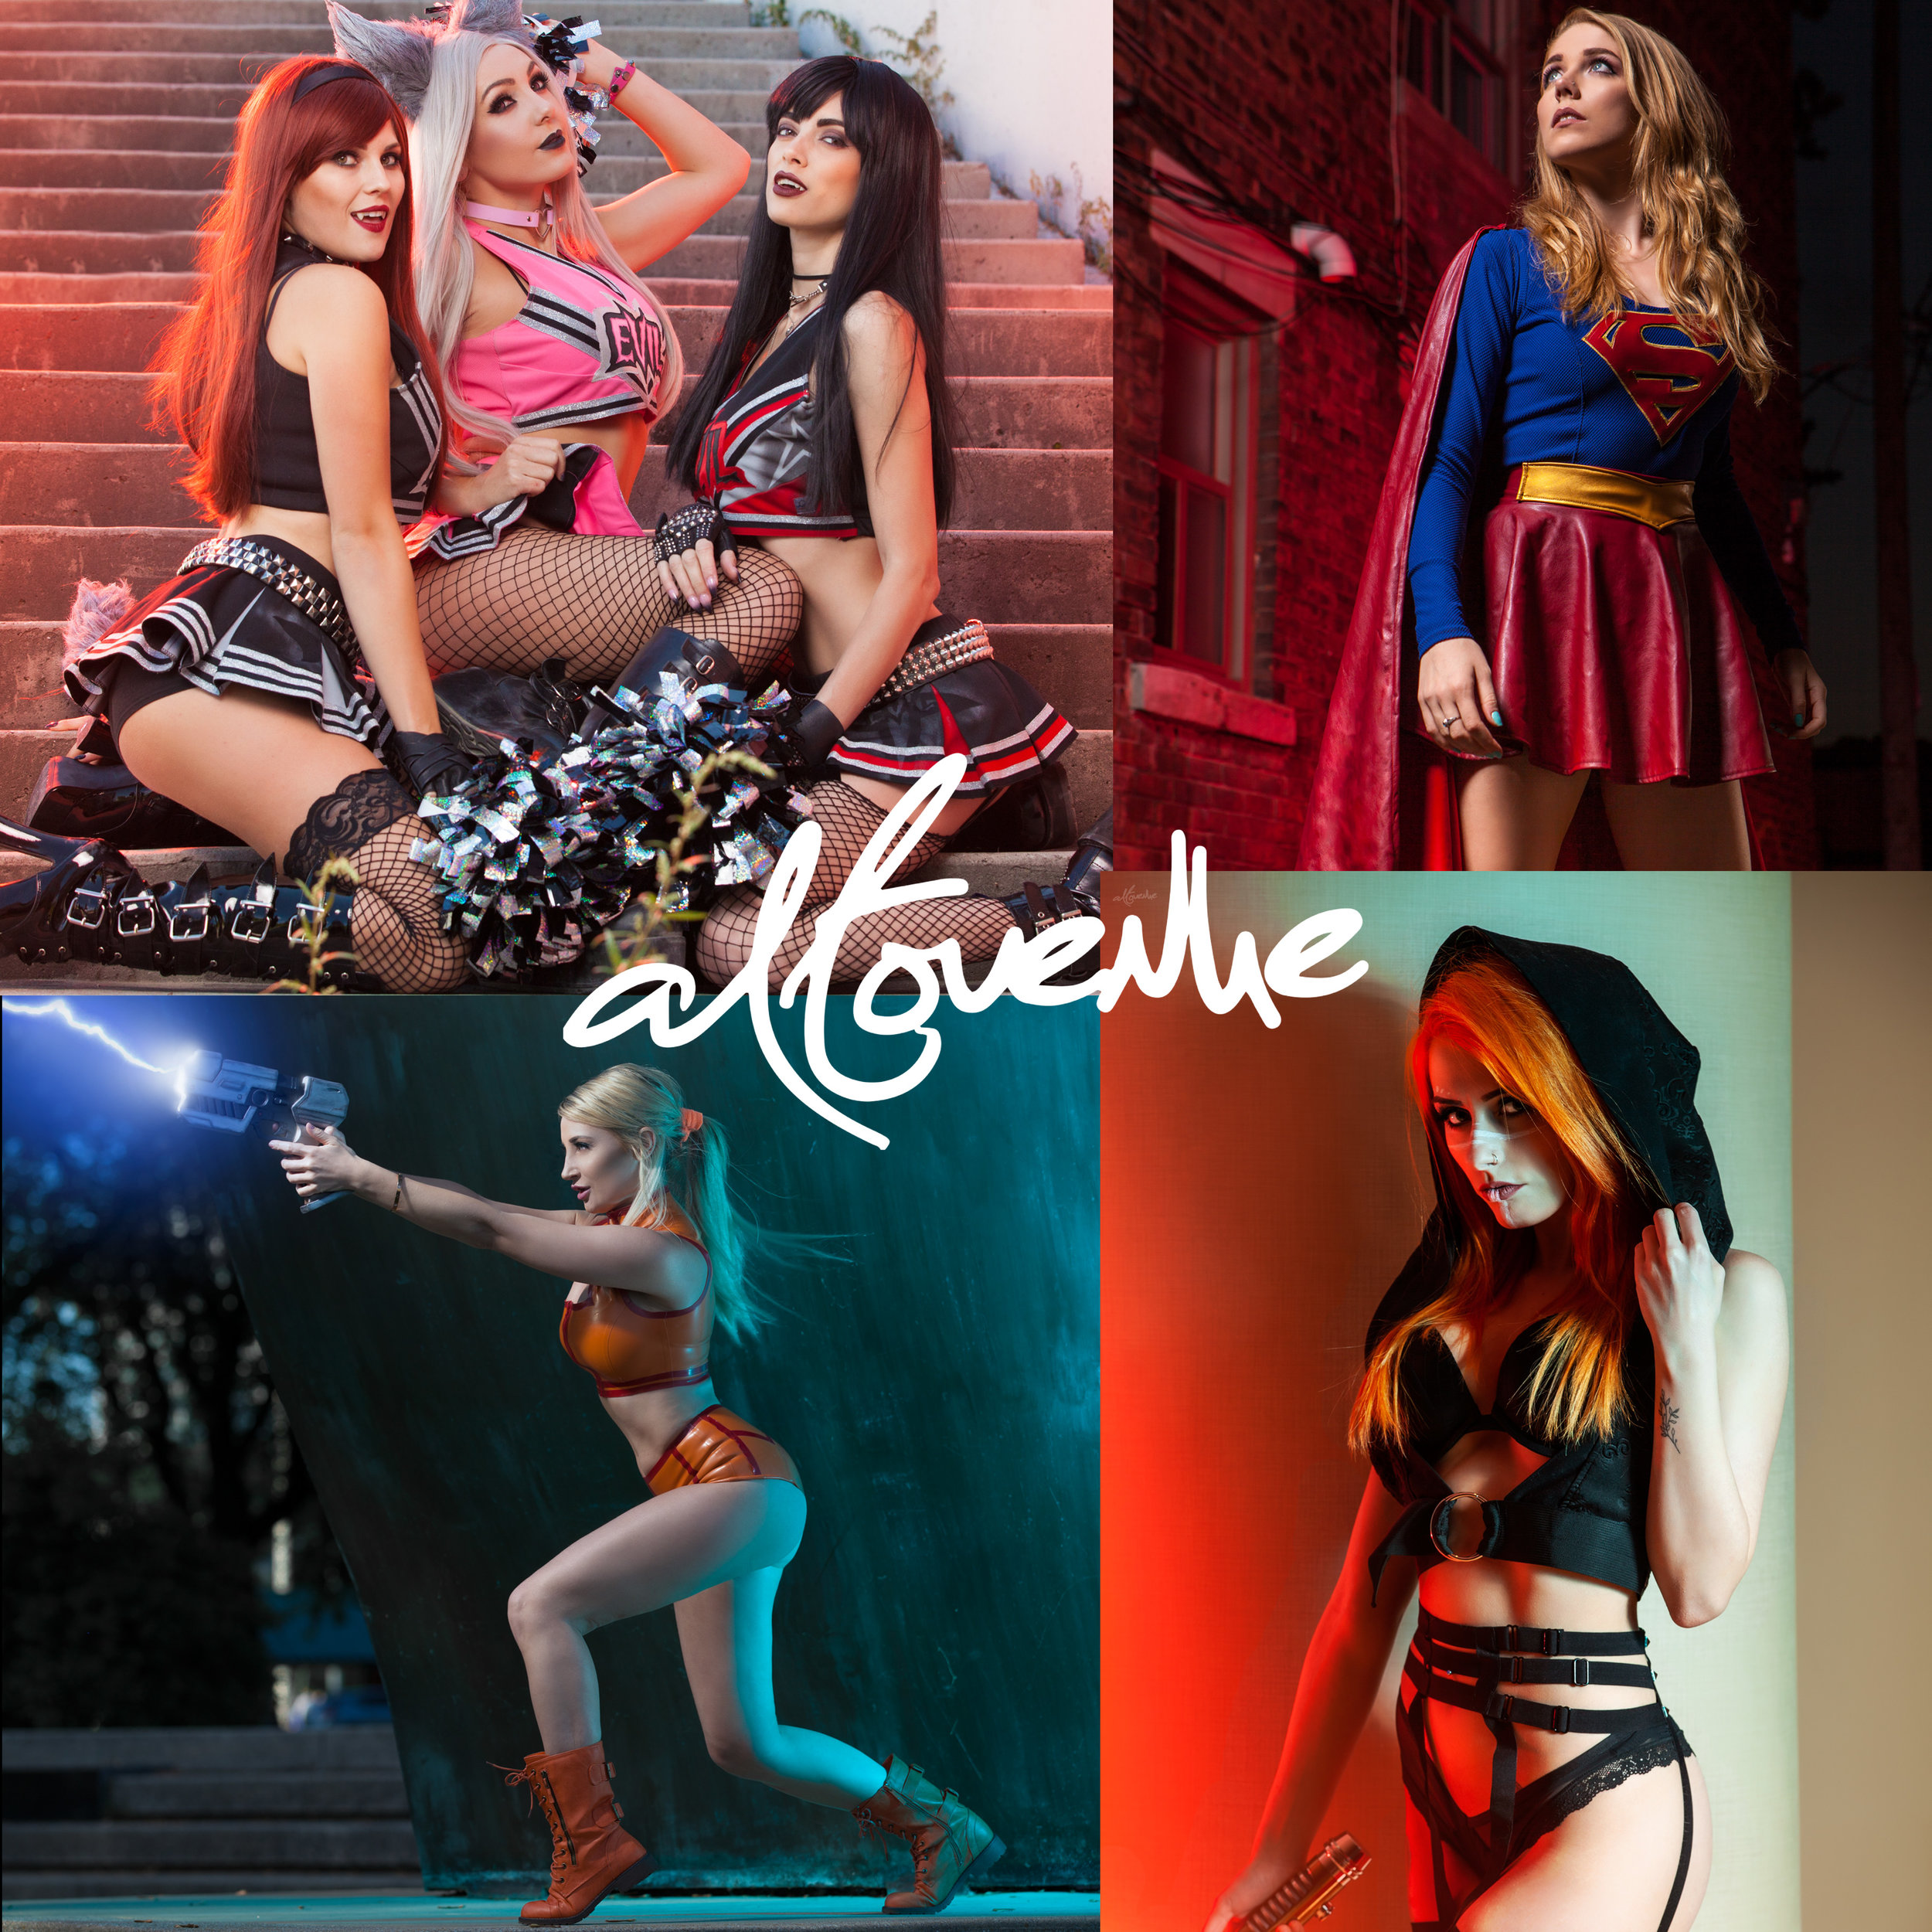 """Cosplay Photography, Lighting and Editing"" Altovenue"